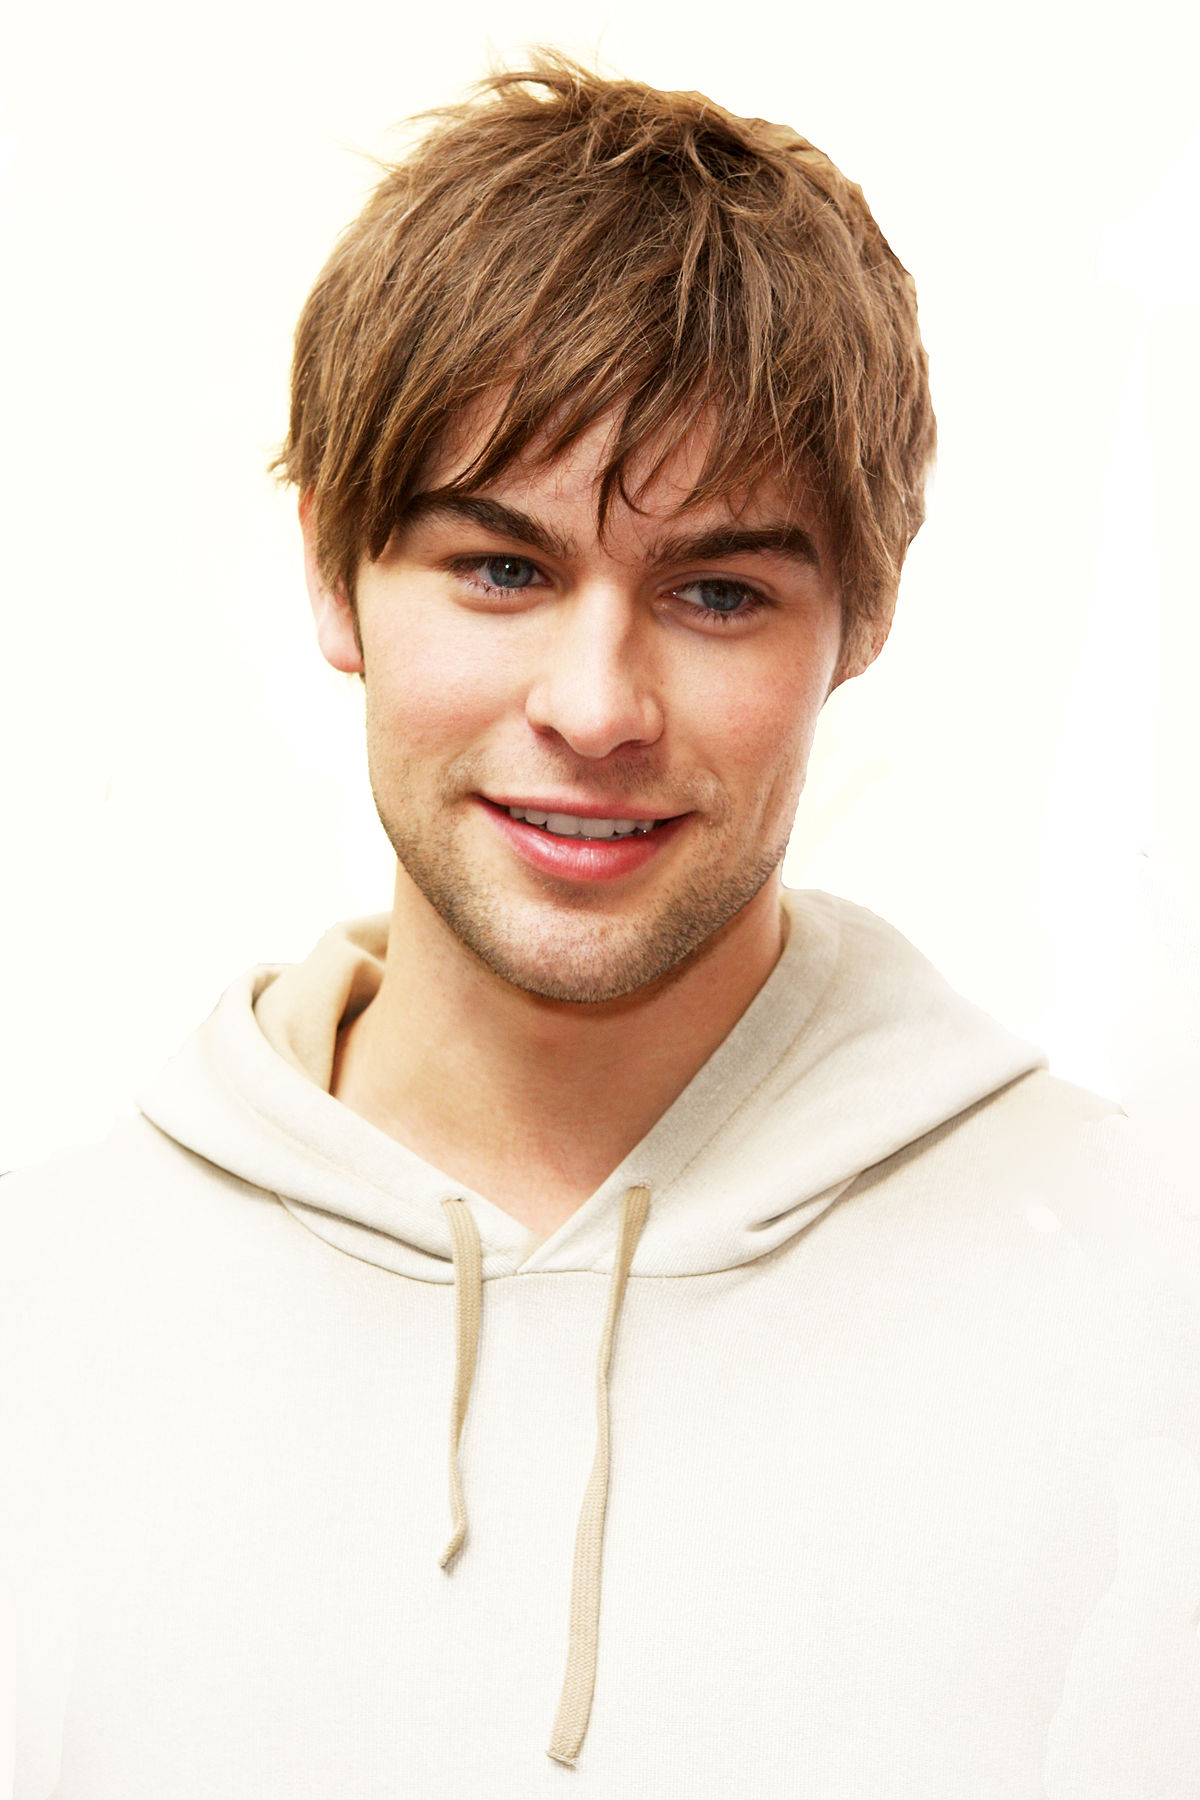 Cartoon pictures of chace crawford - Cartoon Pictures Of Chace Crawford 11